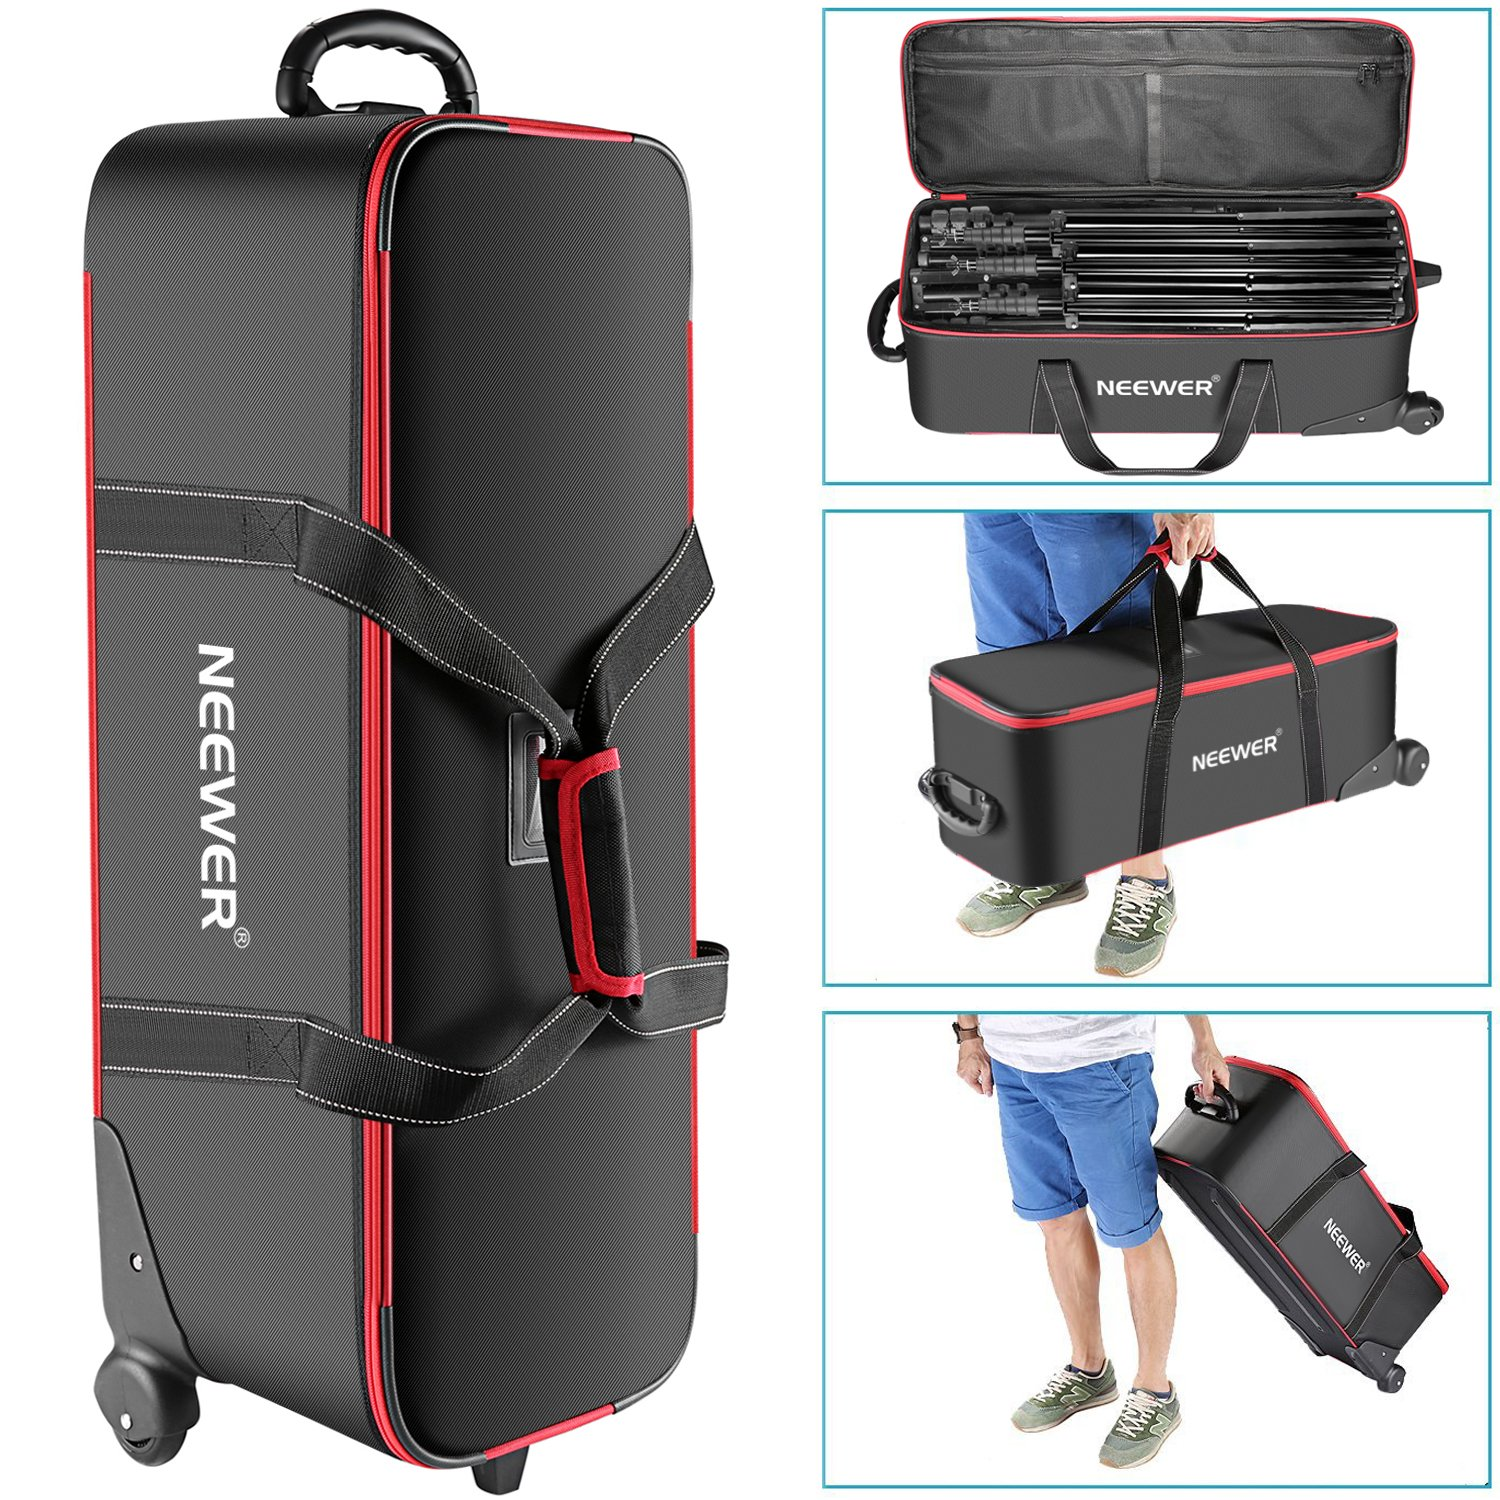 Neewer Photo Studio Equipment Trolley Carry Bag 30''x11''x11''/77x28x27cm with Straps Padded Compartment Wheel, Handle for Light Stand, Tripod, Strobe Light, Umbrella, Photo Studio and Other Accessories